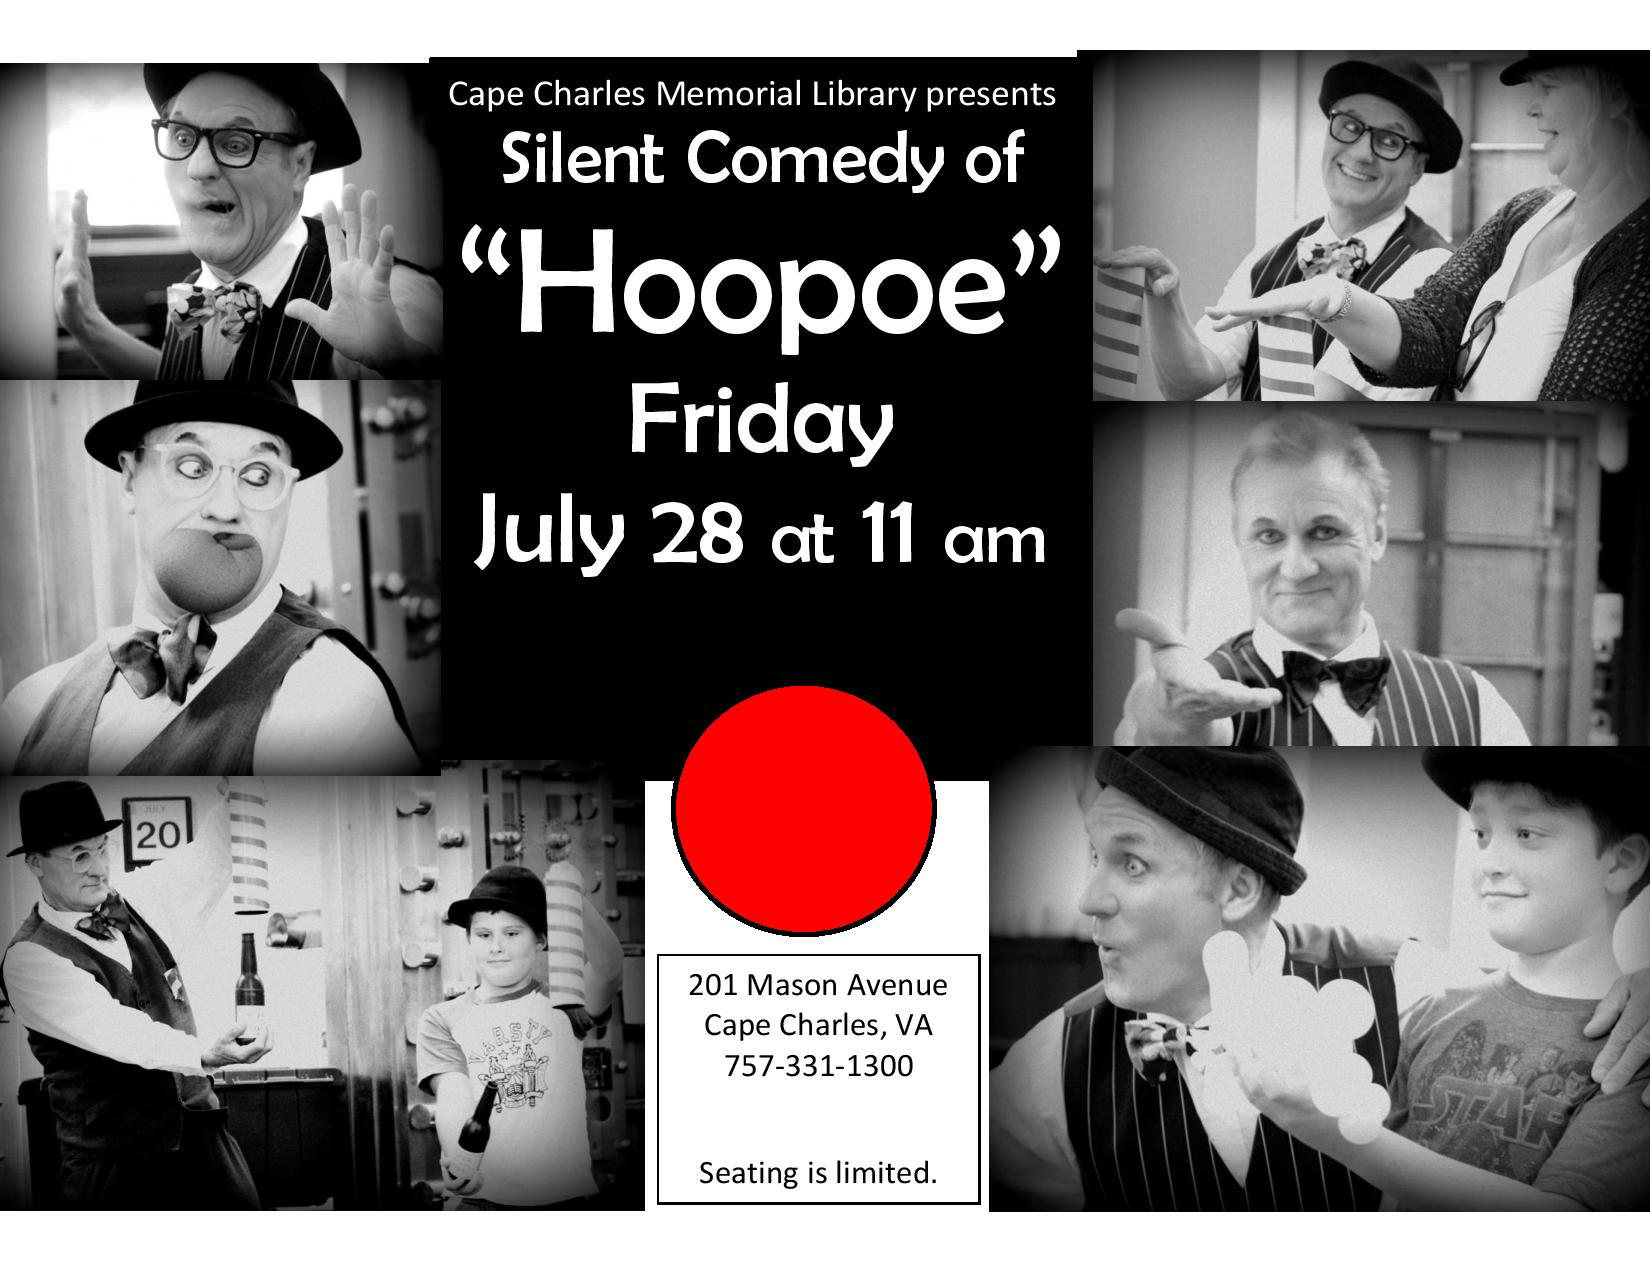 Silent Comedy of Hoopoe @ Cape Charles Memorial Library